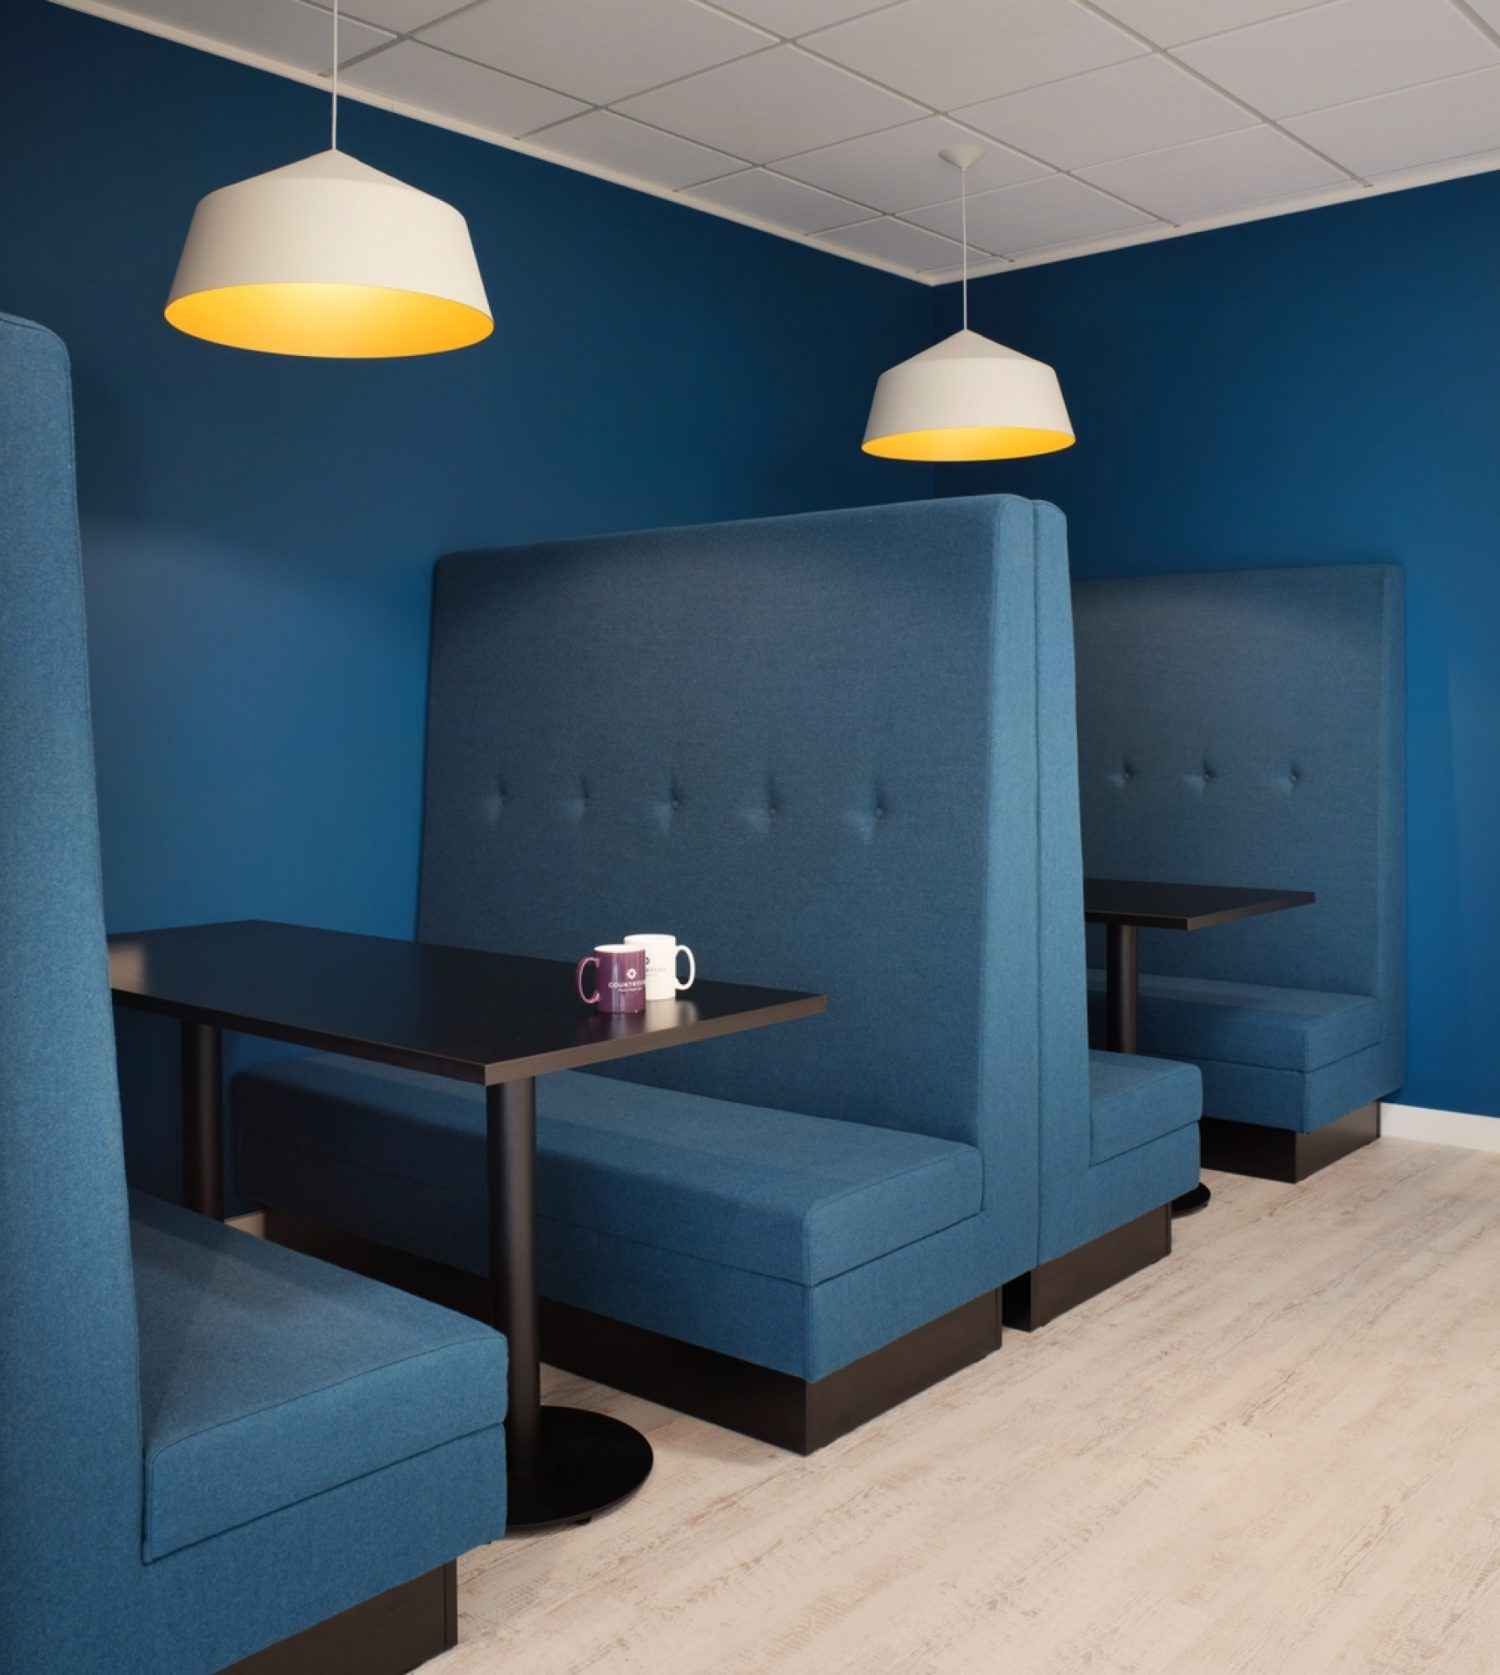 Countryside breakout interior office design